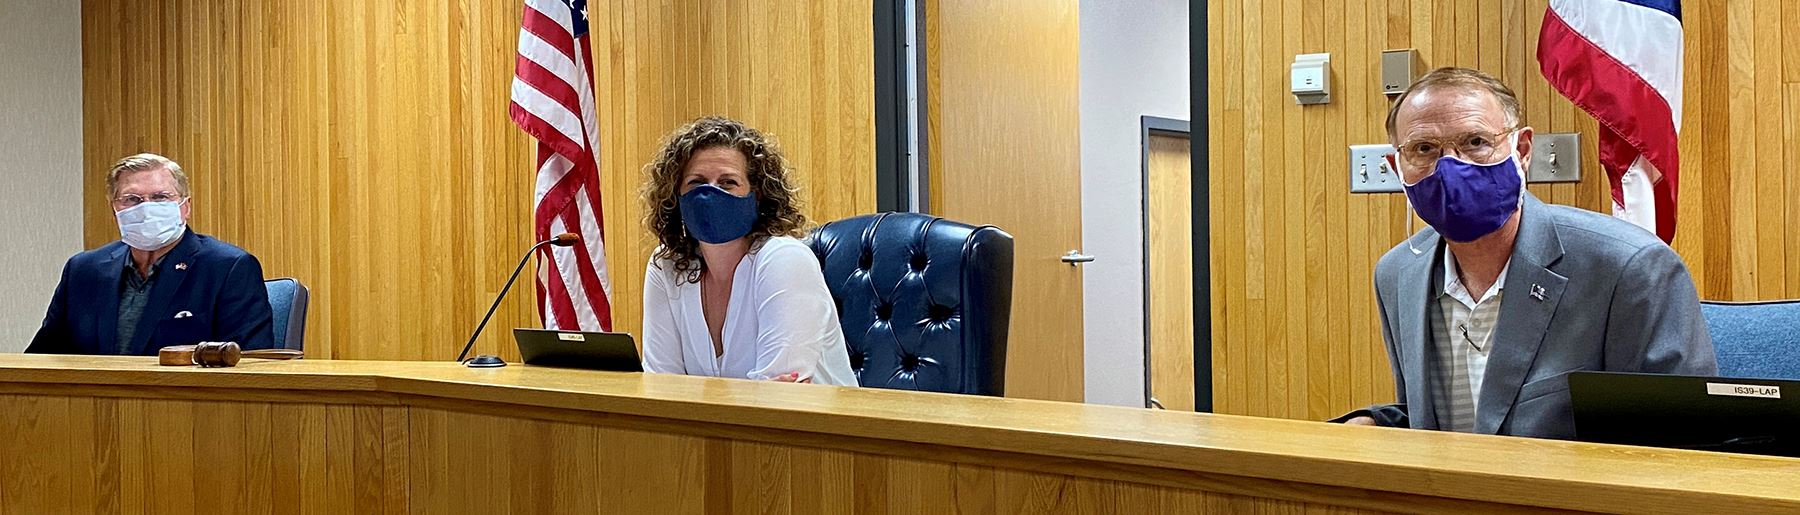 Clark County commissioners wear masks at a recent meeting.